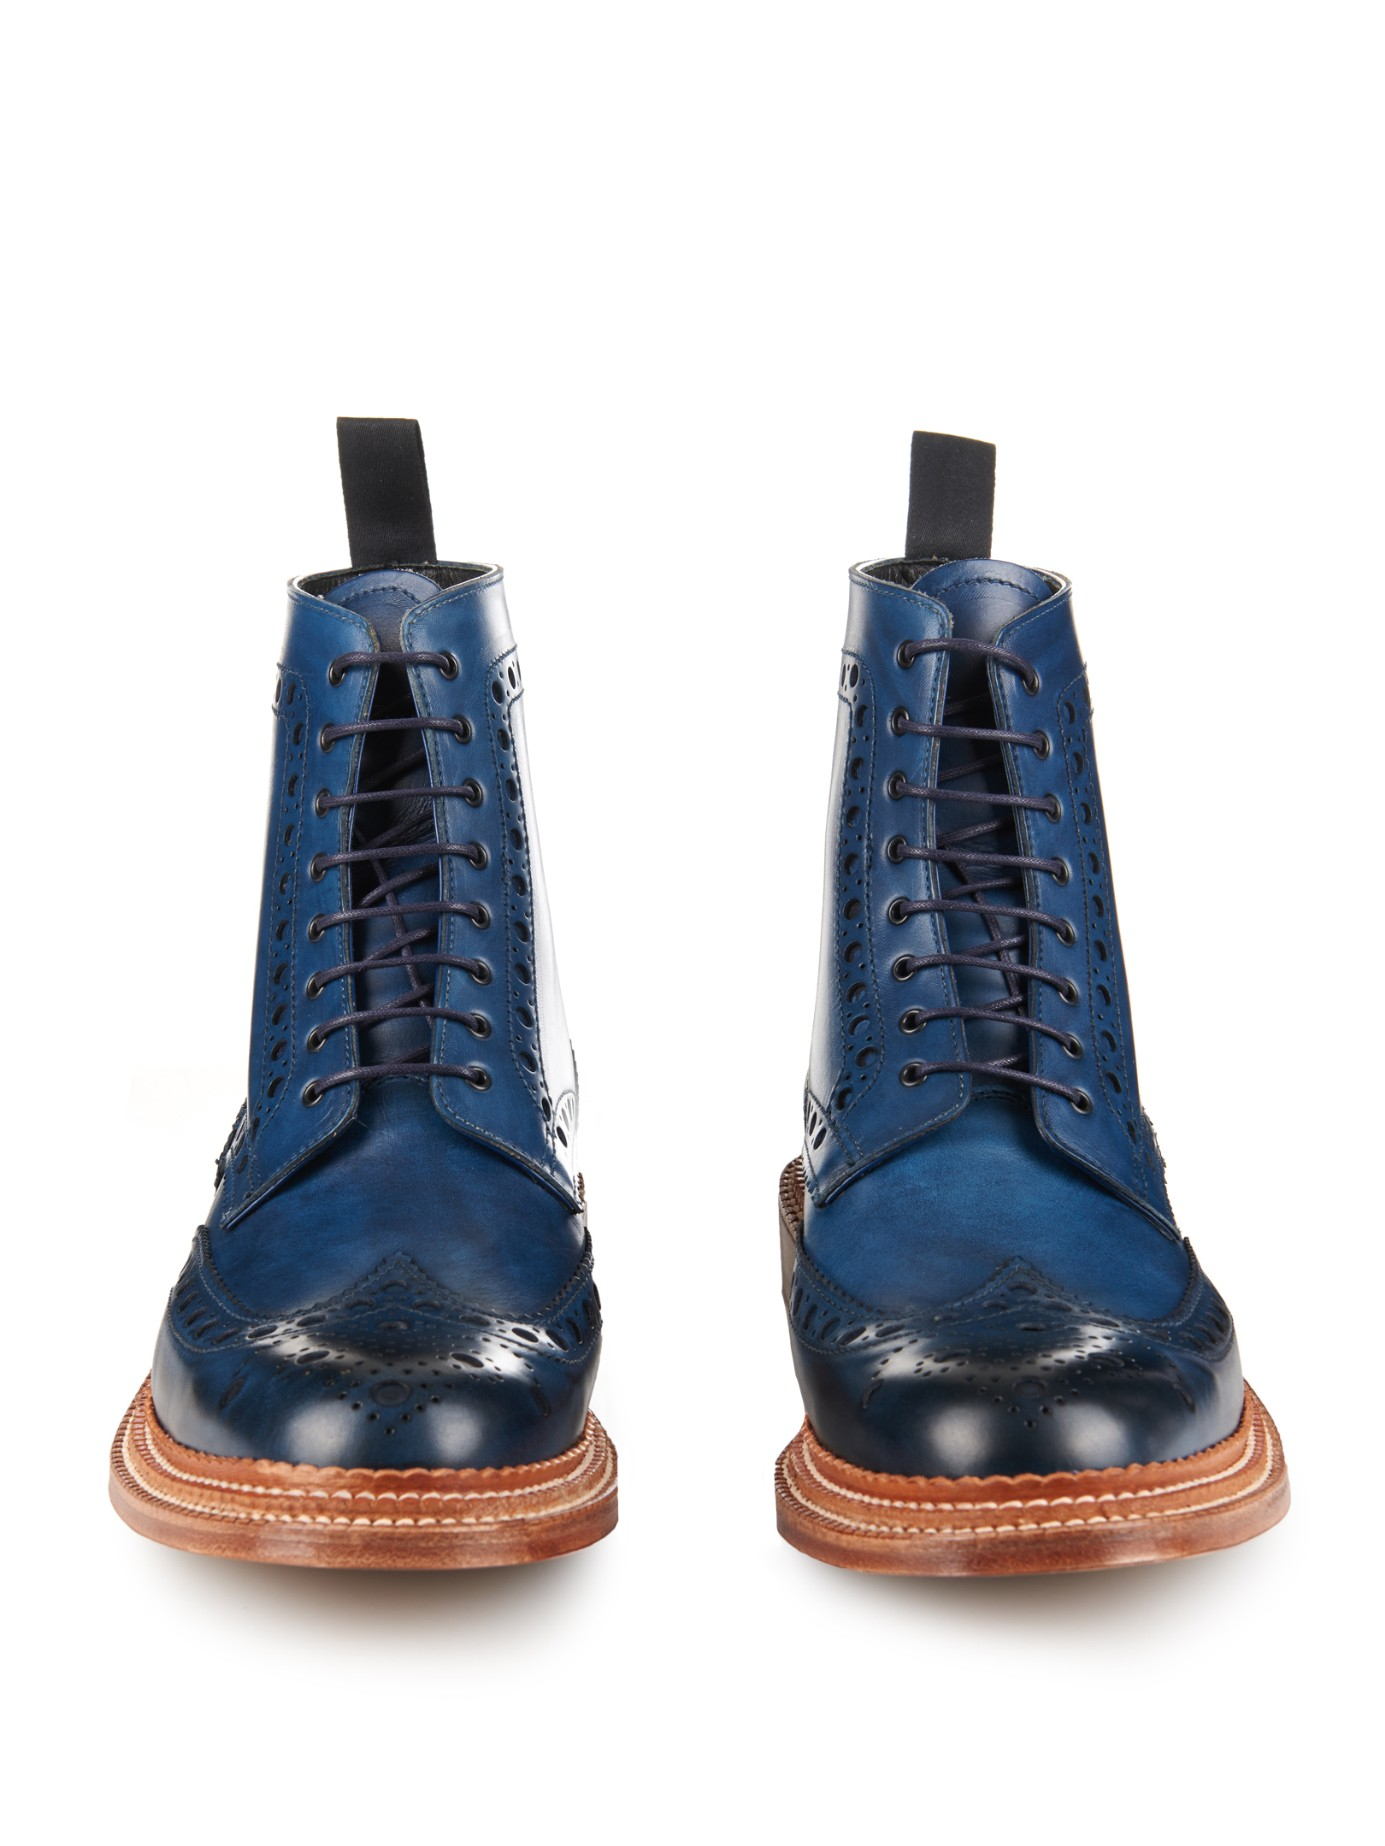 Mens Blue Leather Boots Boot Hto